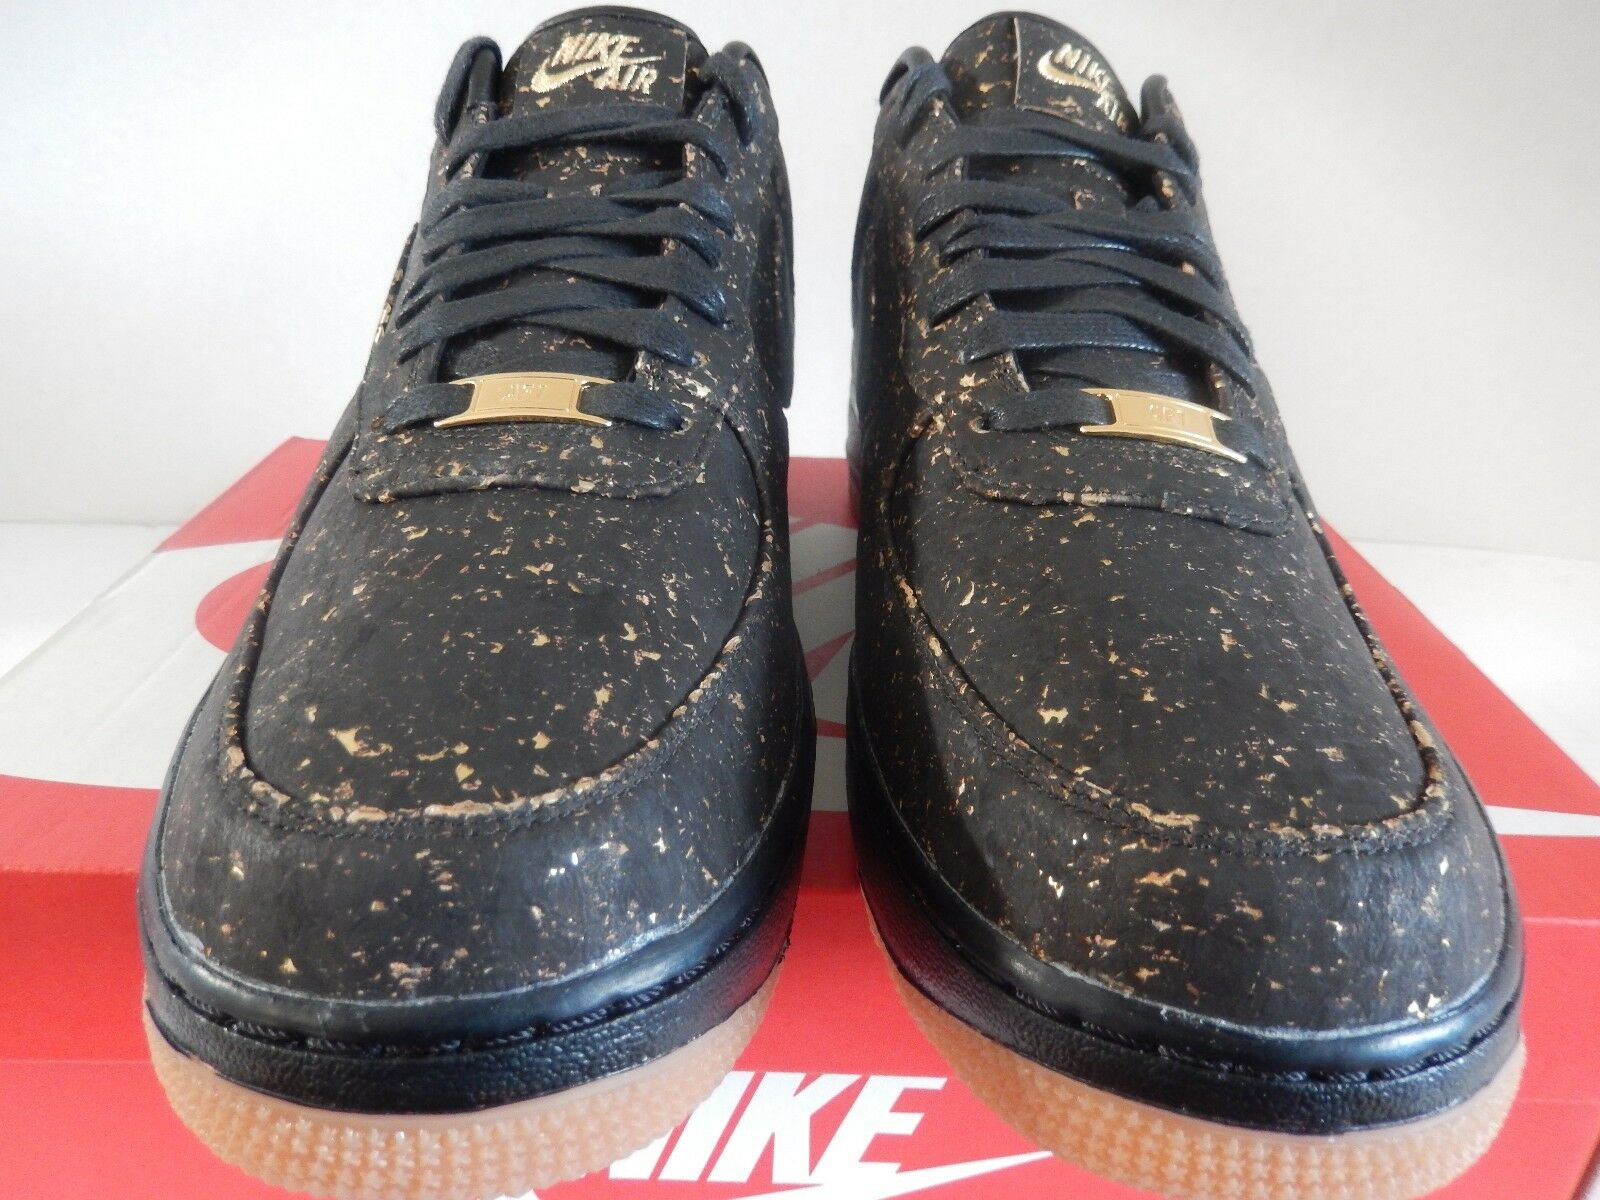 NIKE AIR FORCE 1 LOW CORK ID NBA CHAMPIONSHIP BLACK-MET GOLD SZ 11 [AH5908-994]